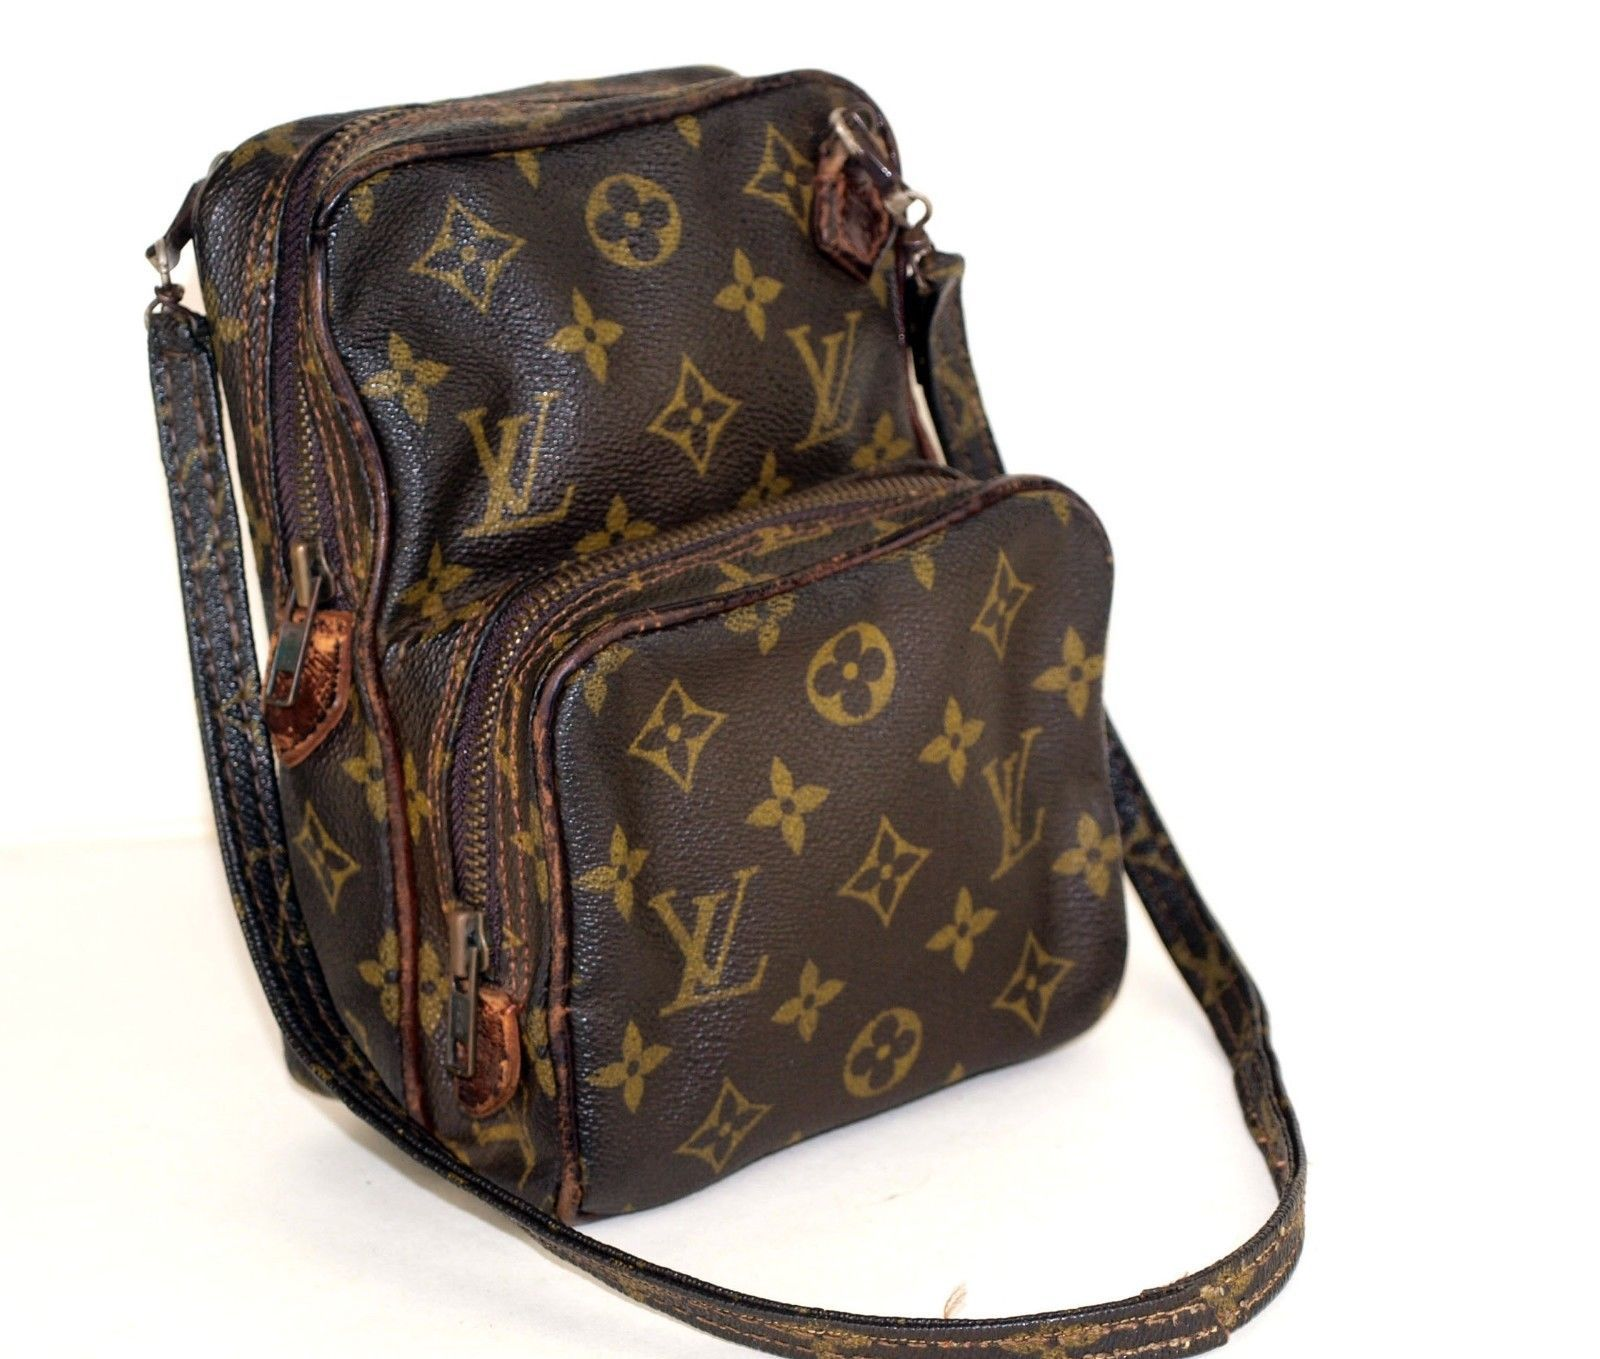 b7fd625e87fe 57. 57. Previous. 100% Authentic Louis Vuitton Monogram Mini Amazone Shoulder  Bag France. 100% Authentic ...